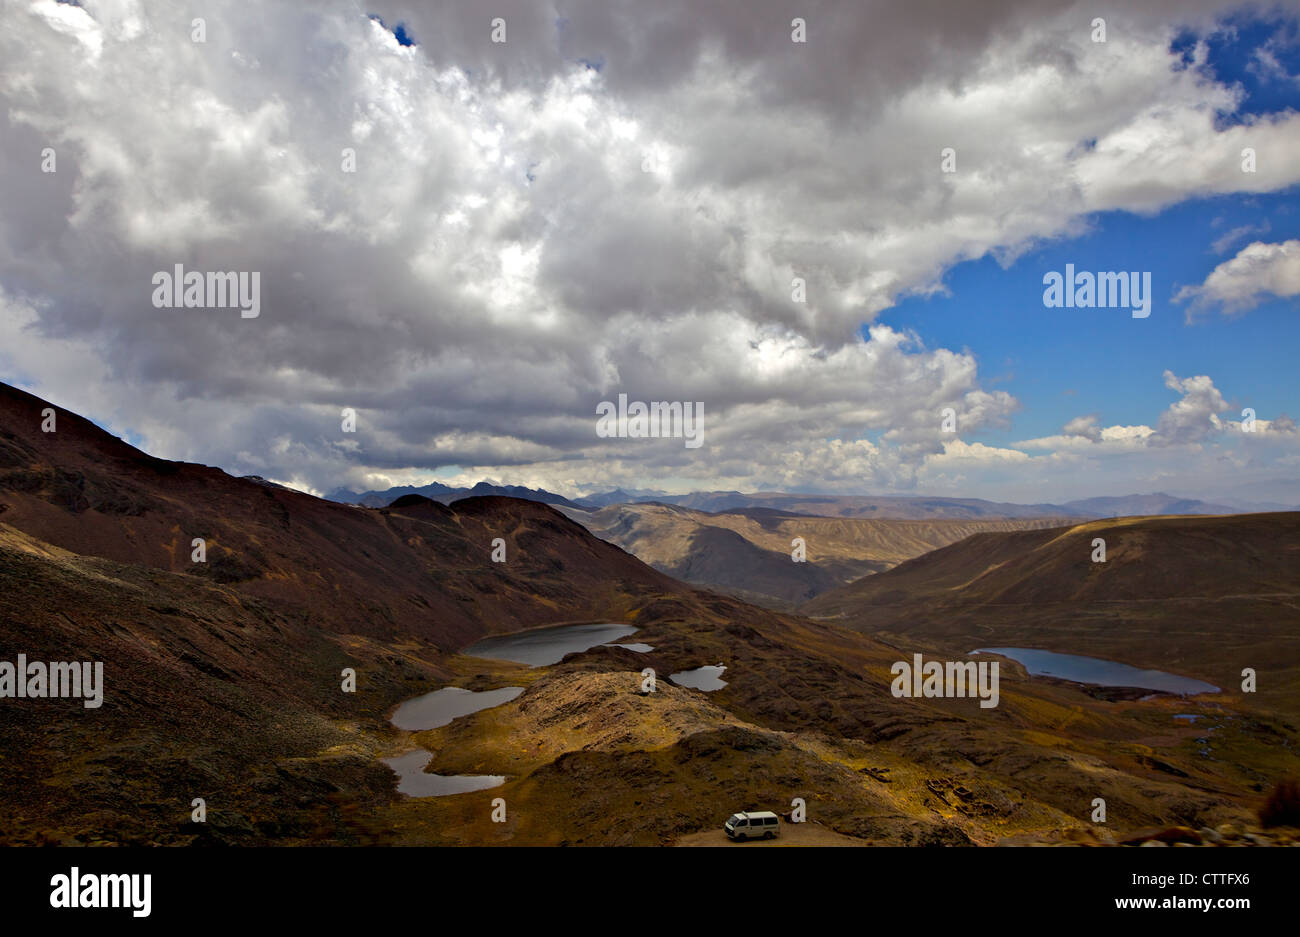 View from Mt. Chacaltaya altiplano in distance, Calahuyo near La Paz, Bolivia, Andes, South America, Stock Photo